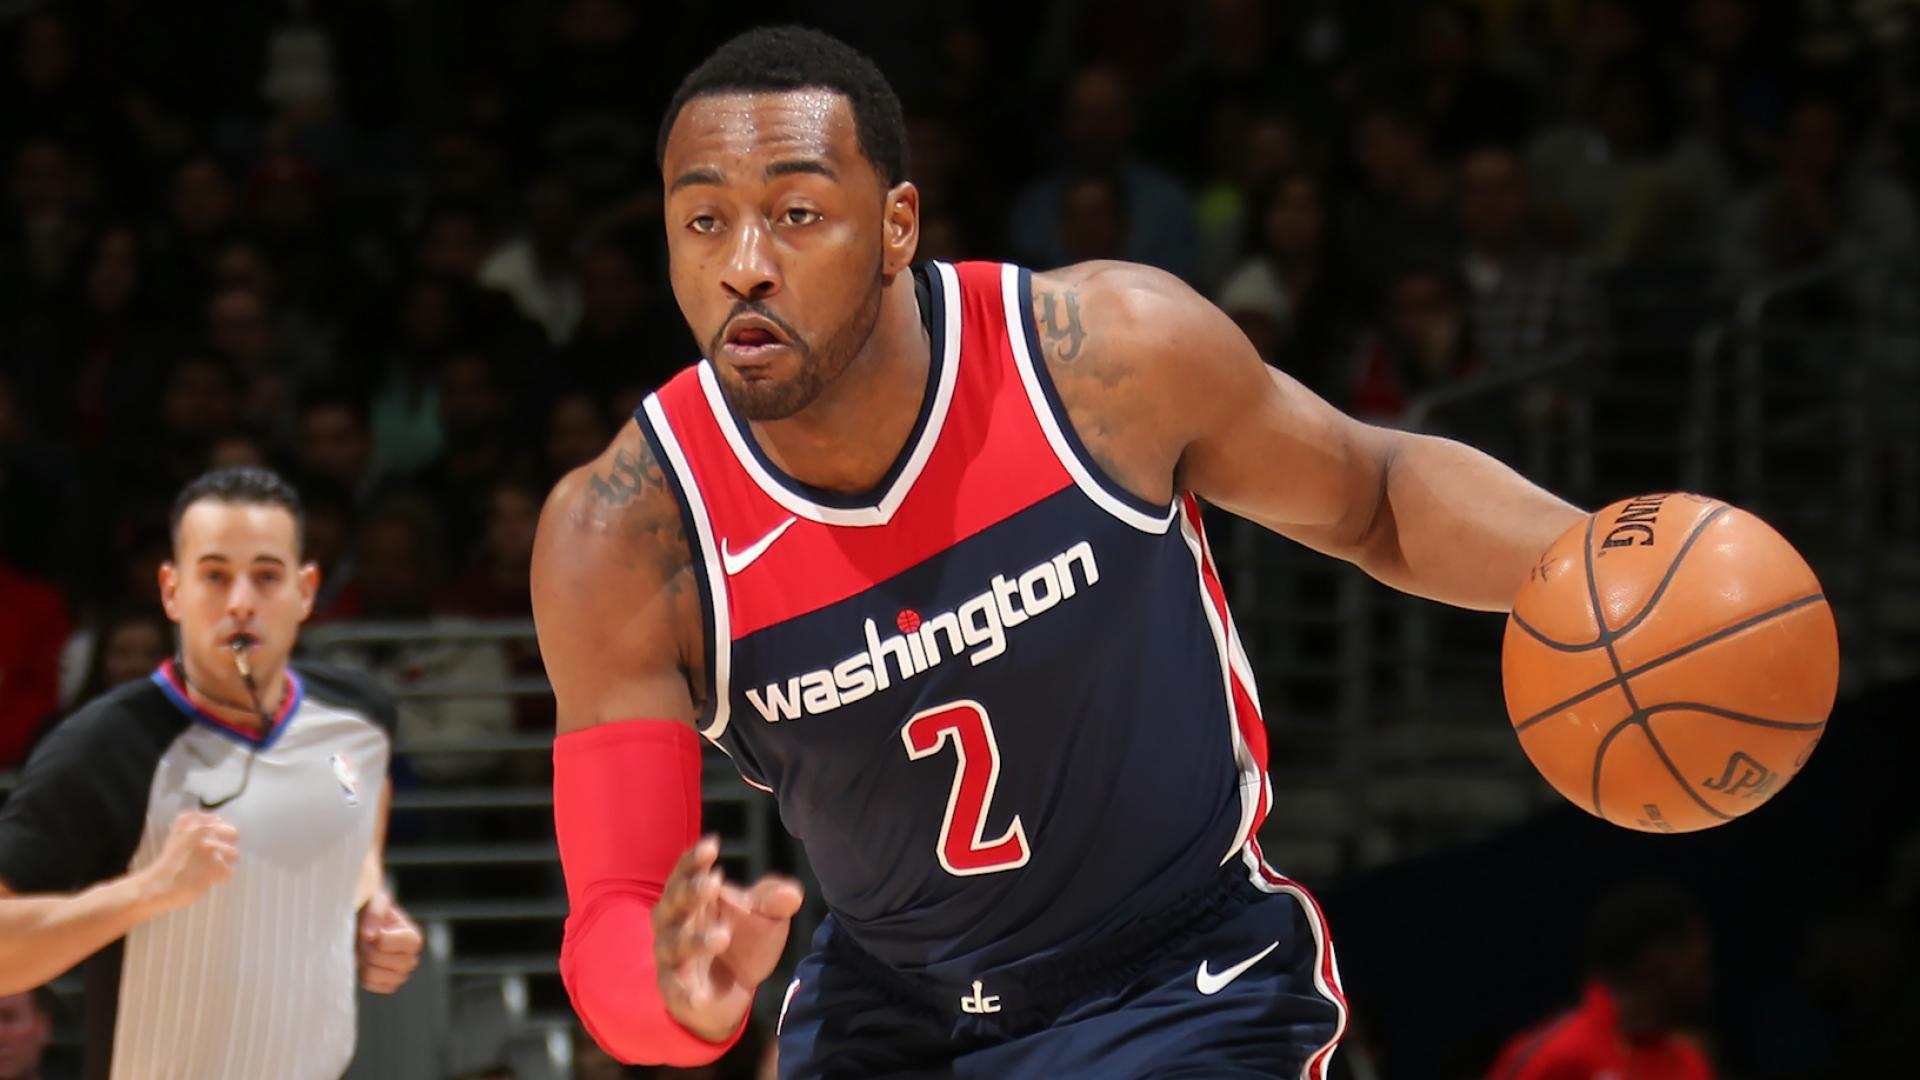 John Wall to Miss Six Weeks After Knee Surgery